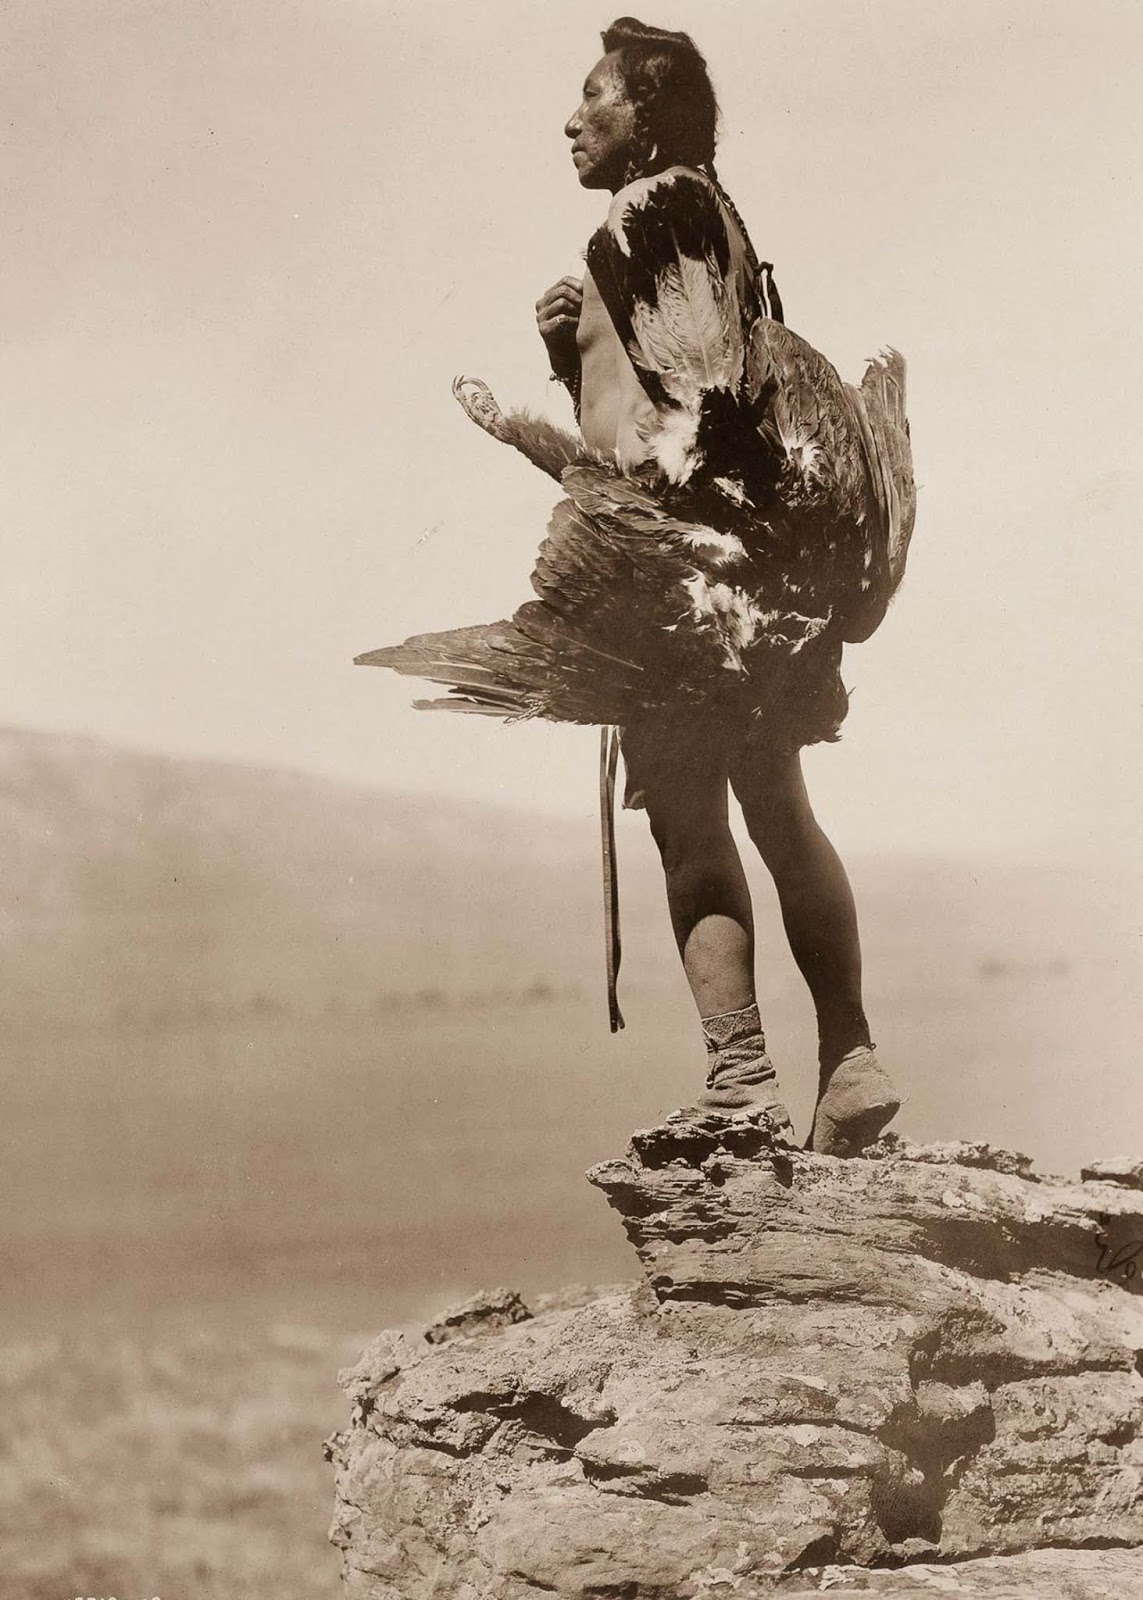 A Hidatsa man with a captured eagle. 1908.